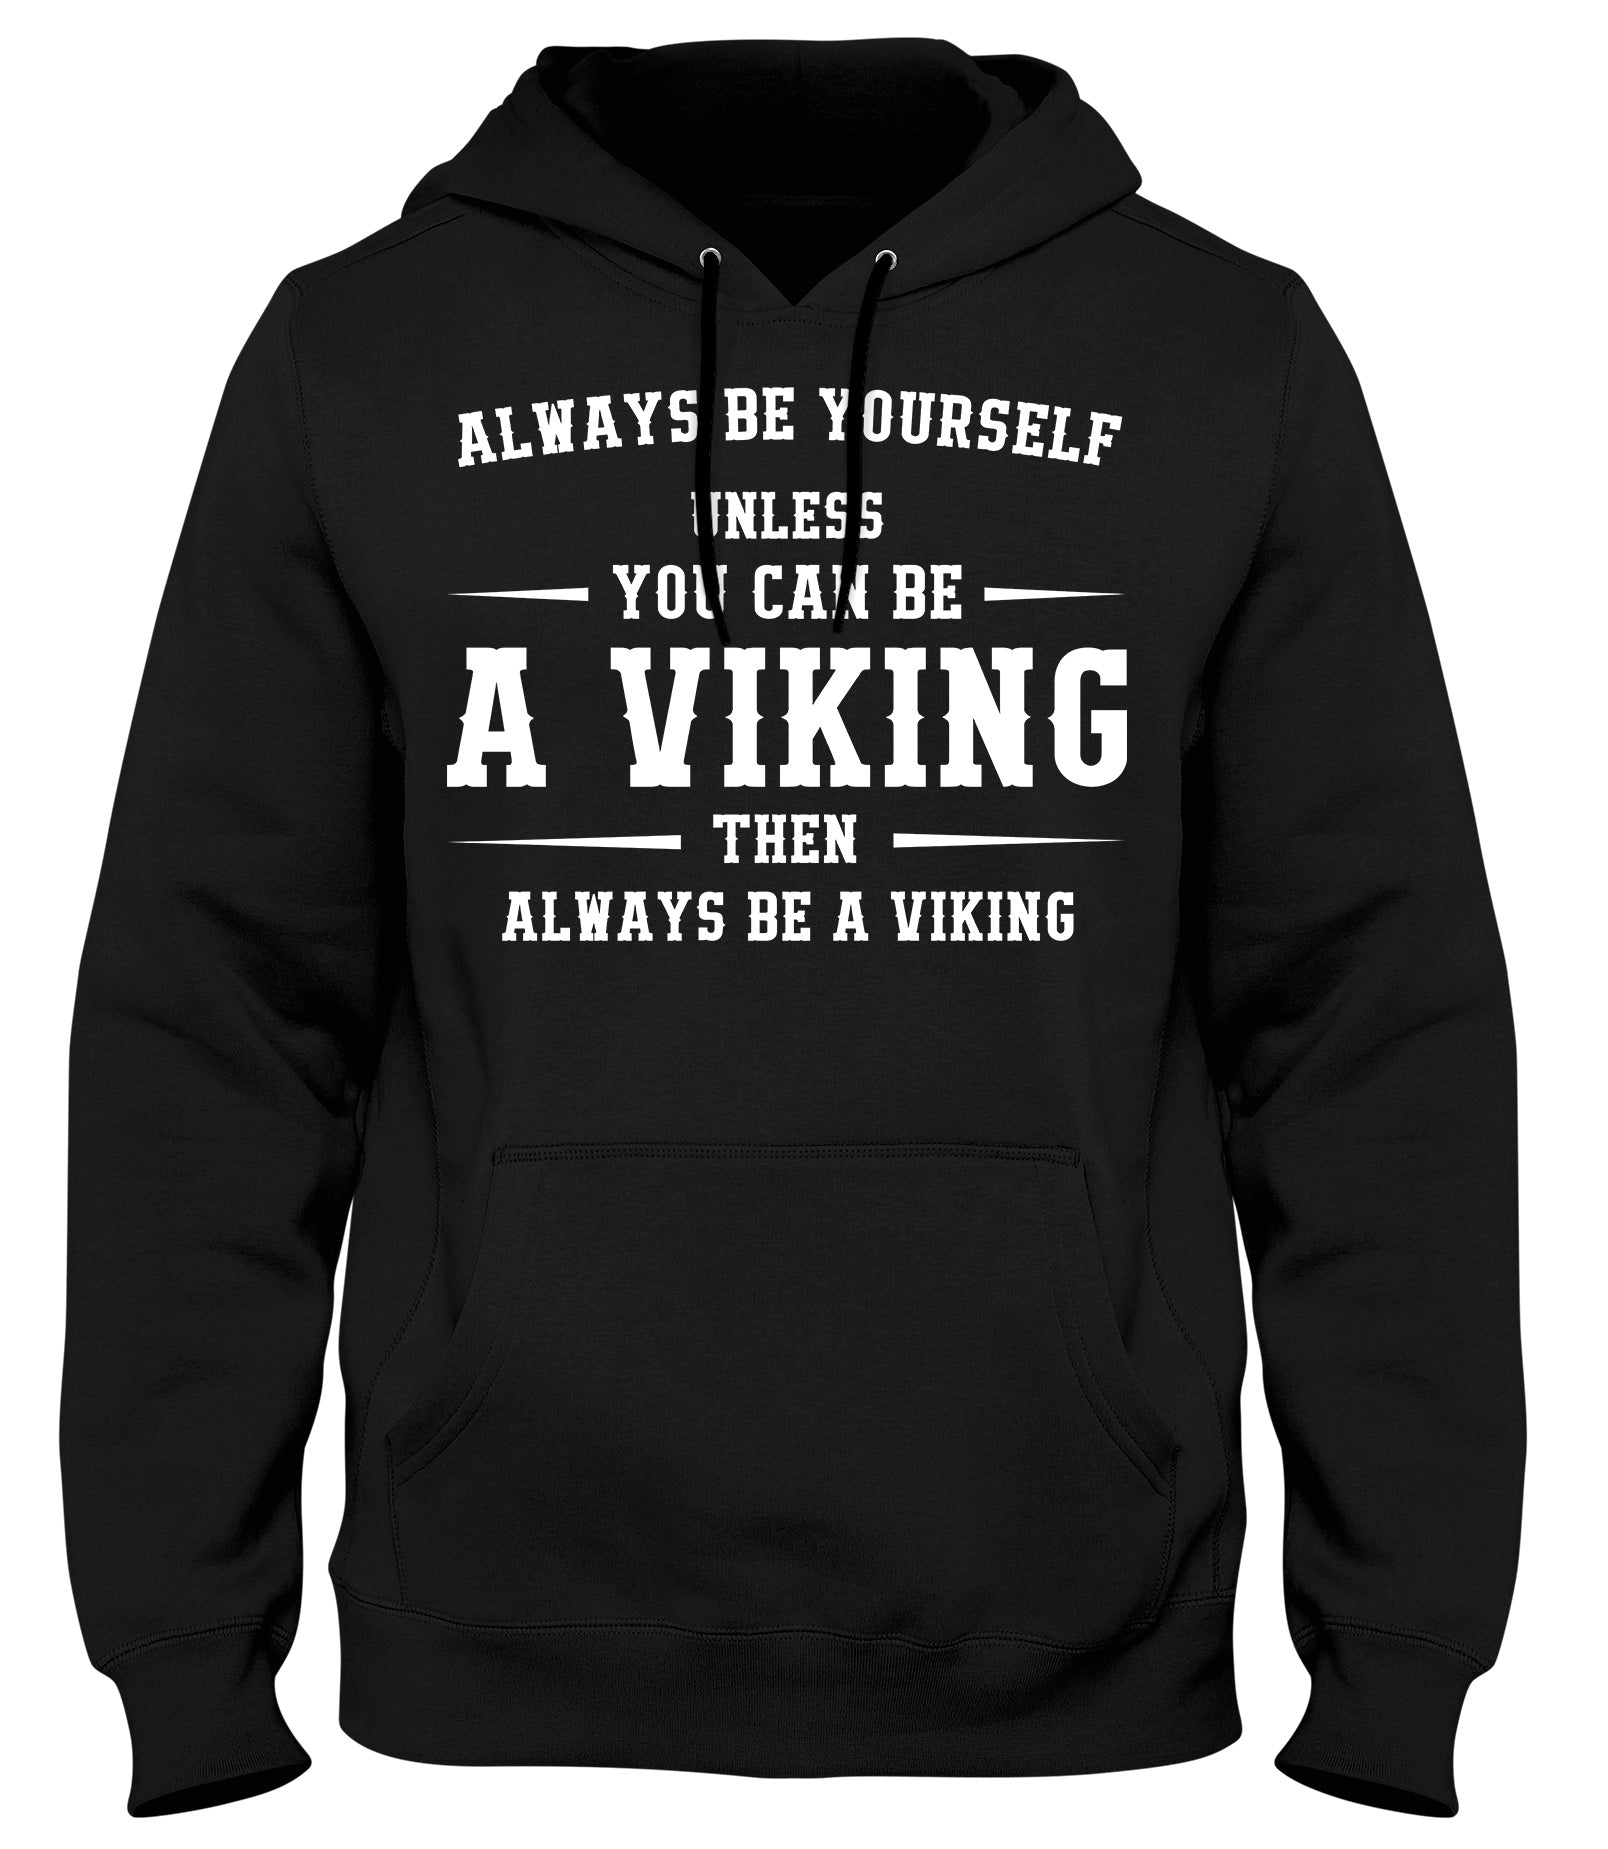 ALWAYS BE YOUSELF UNLESS YOU CAN BE A VIKING THEN ALWAYS BE A VIKING MENS WOMENS LADIES UNISEX FUNNY SLOGAN HOODIE